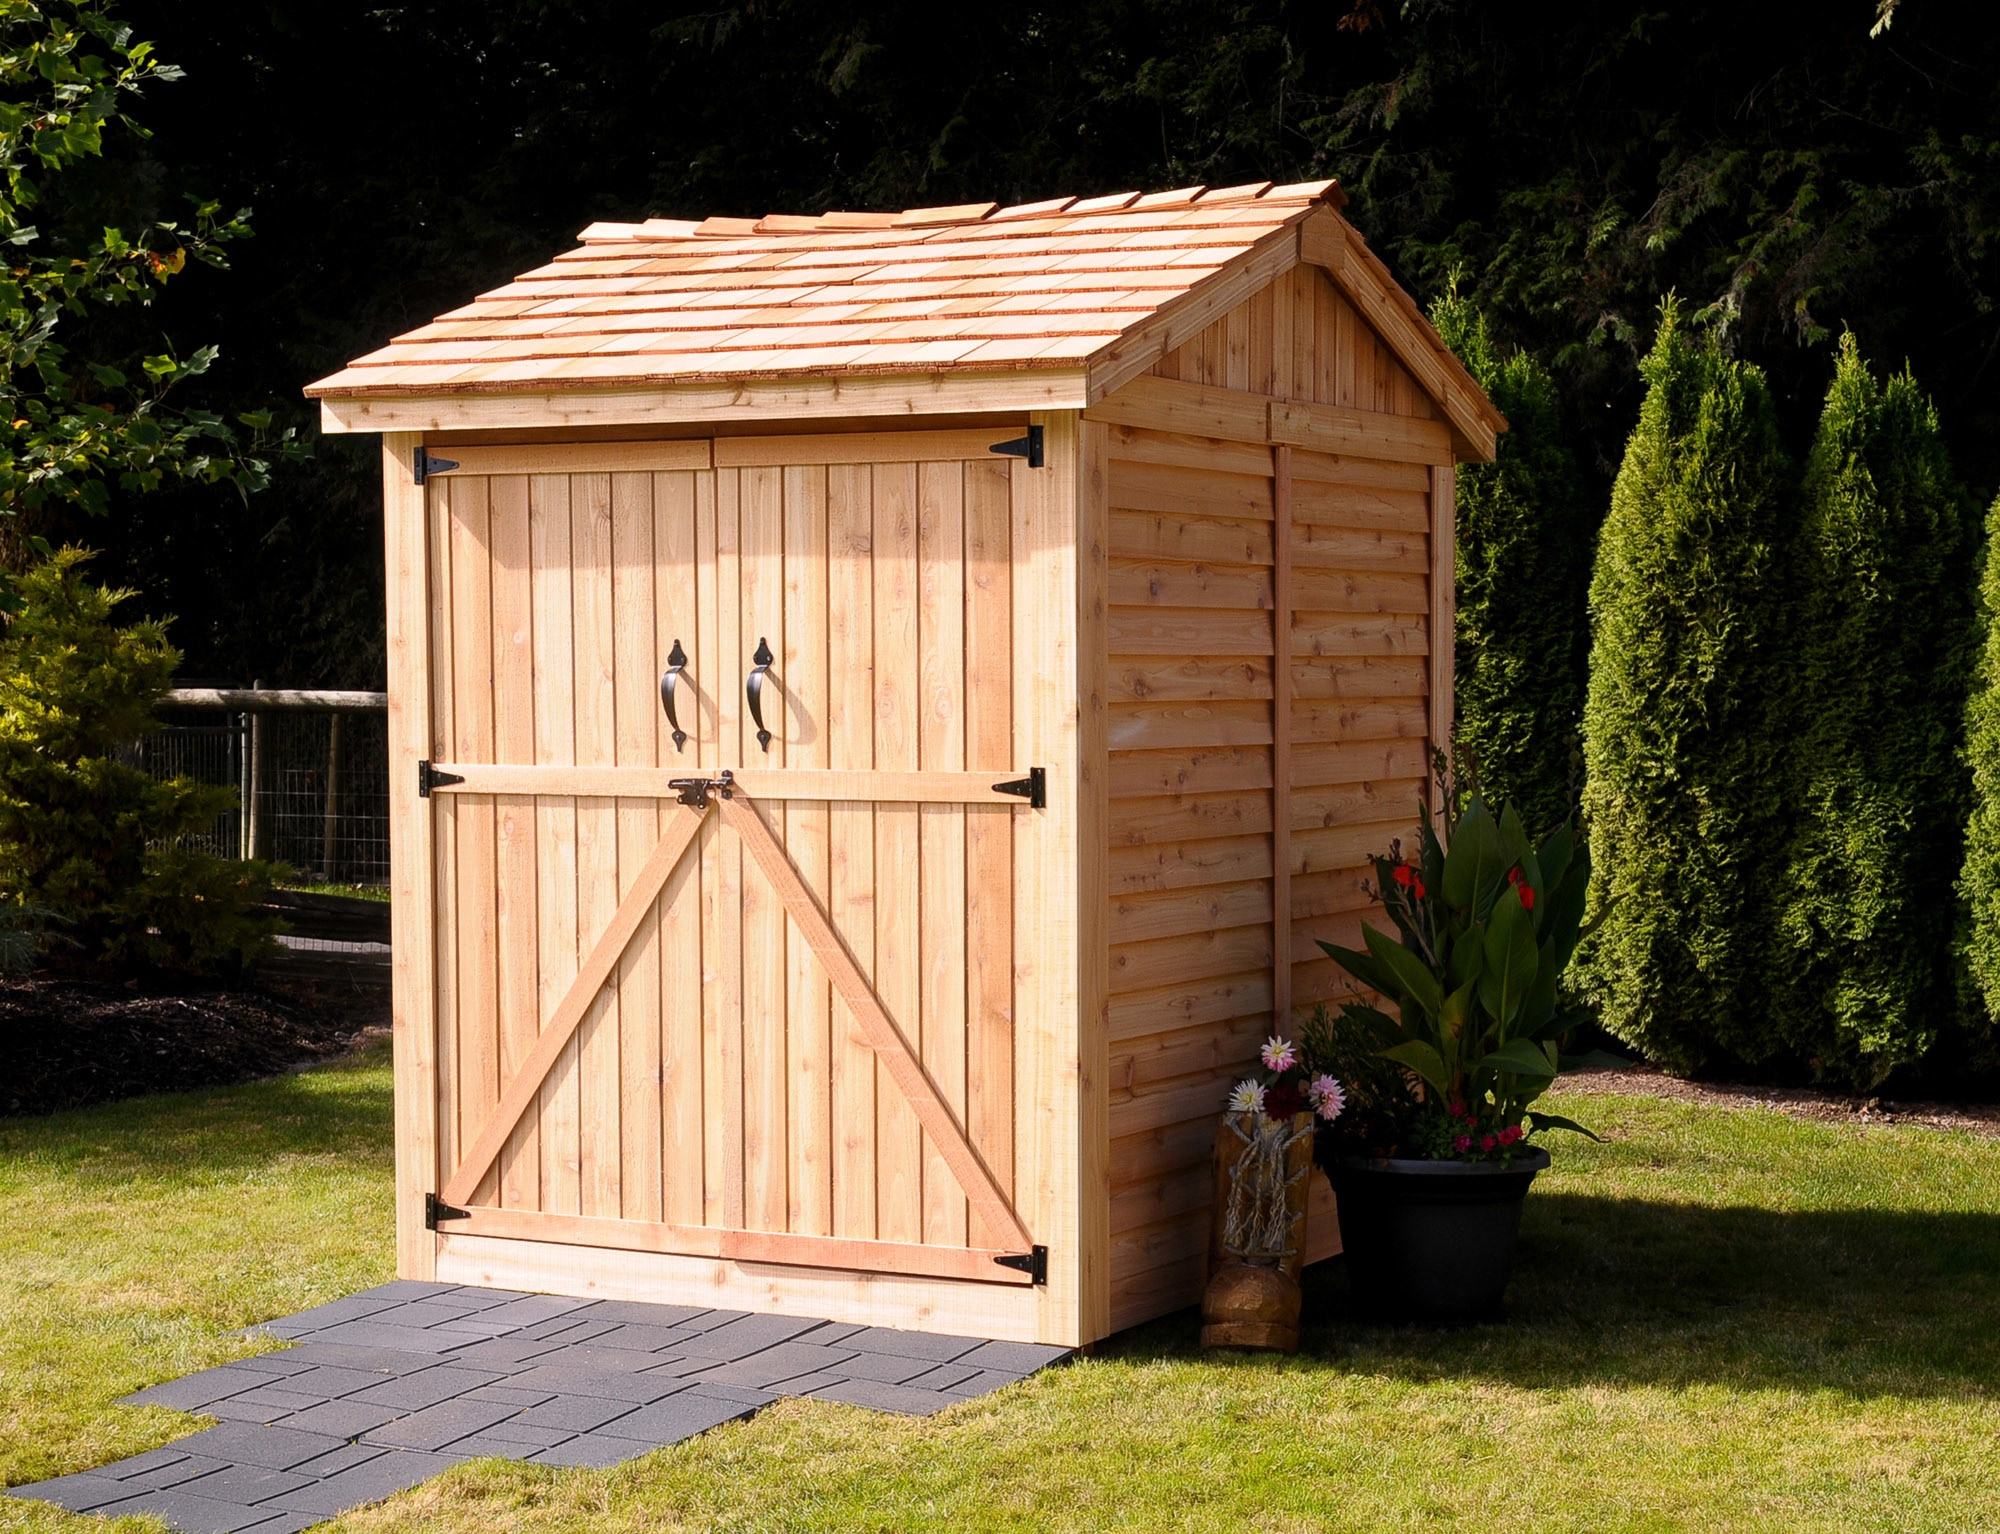 hewetson storage sheds lifestyle series 6 x 6 apex storage wooden cedar shed